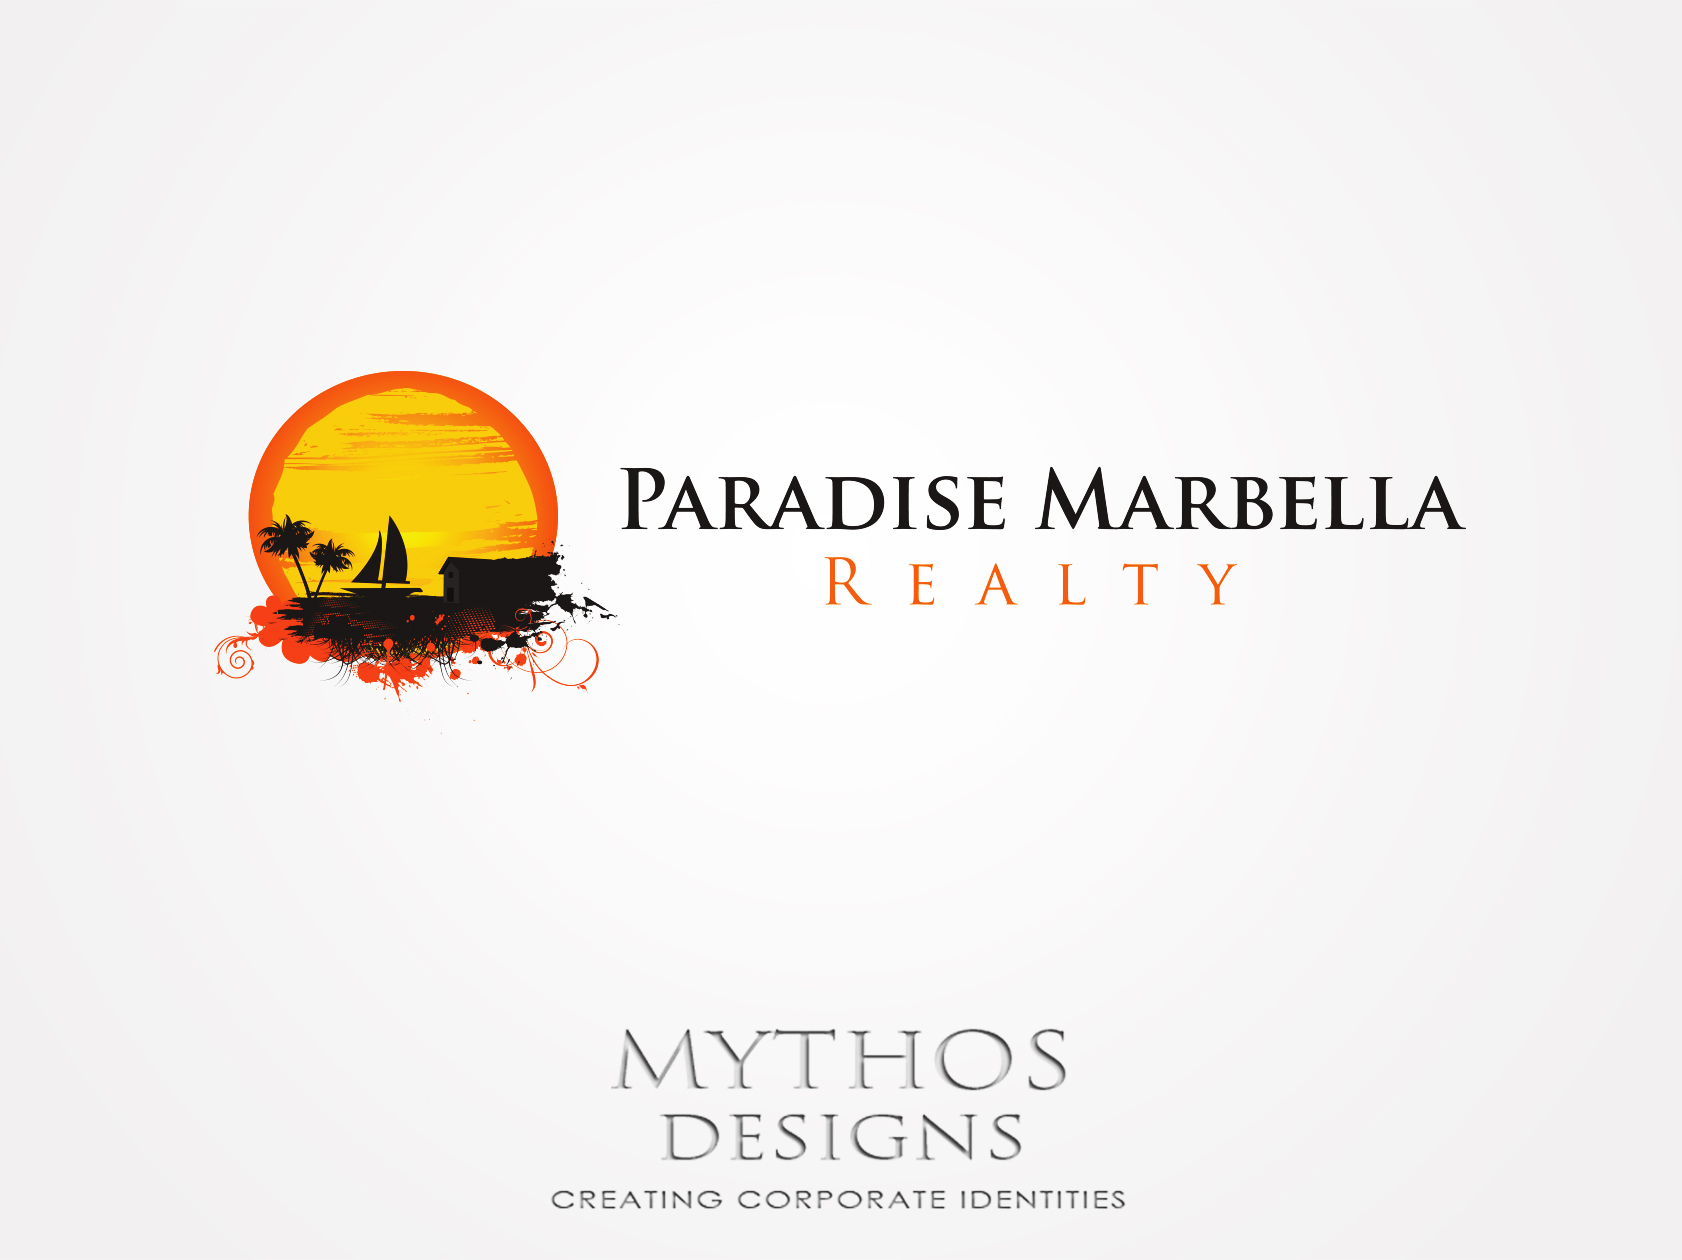 Logo Design by Mythos Designs - Entry No. 66 in the Logo Design Contest Captivating Logo Design for Paradise Marbella Realty.